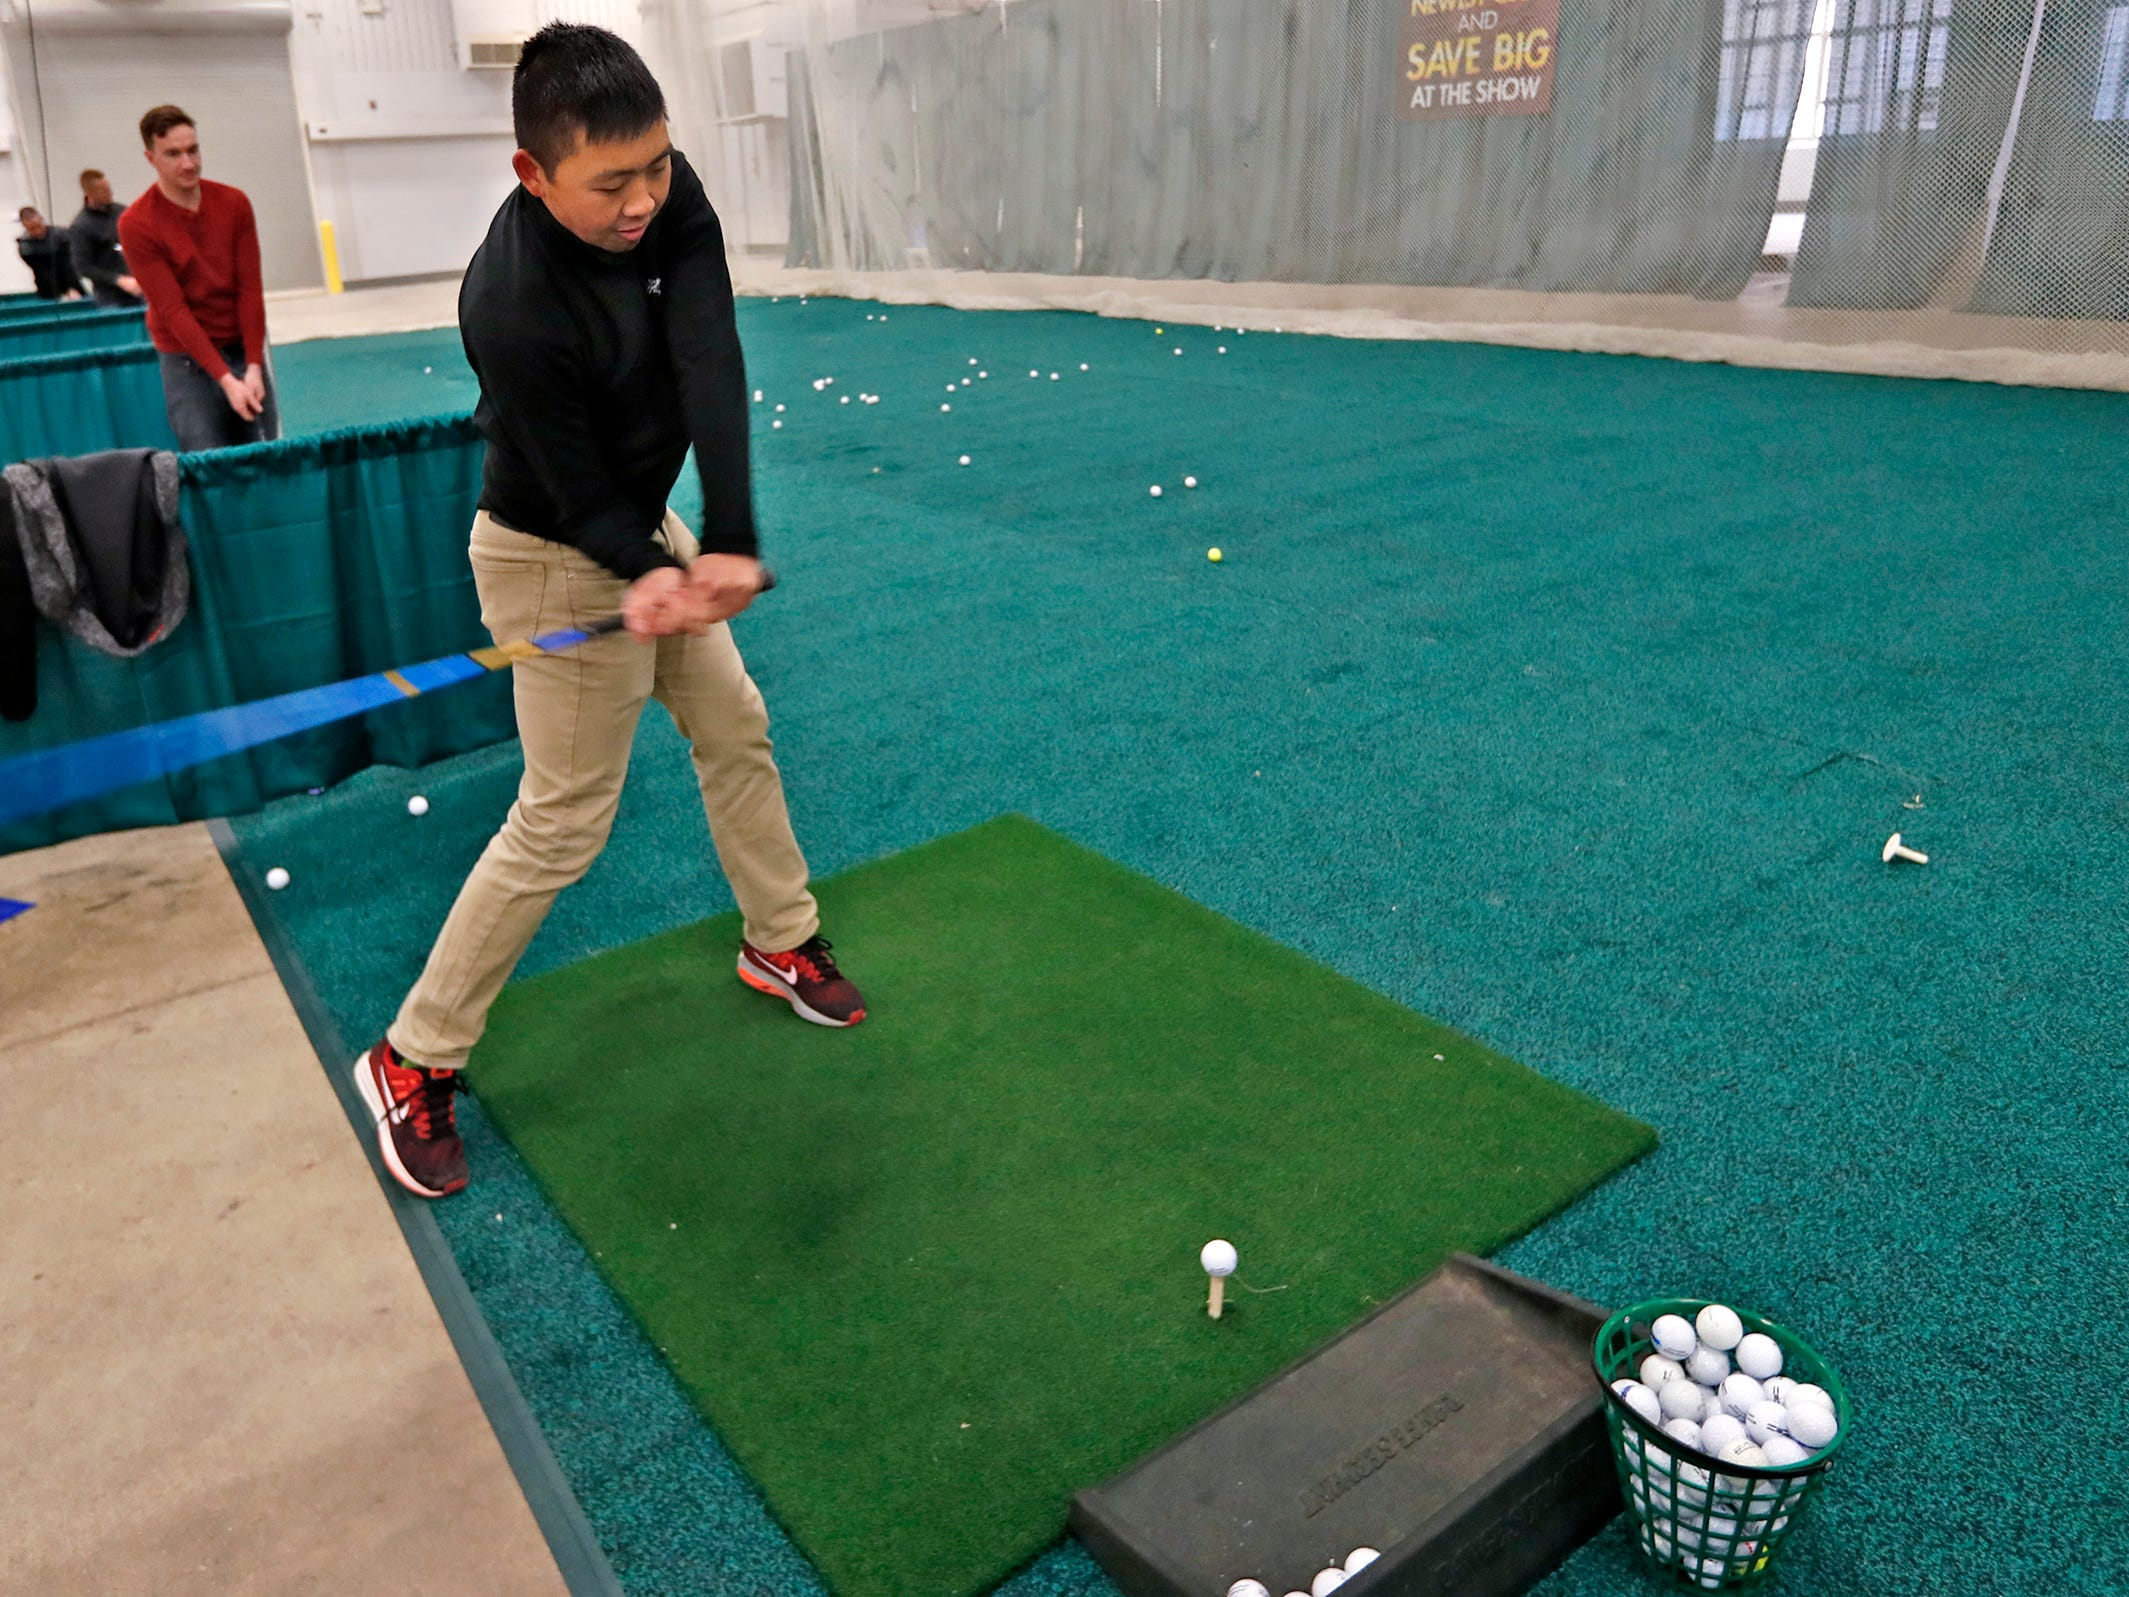 Sam Richmond, left, and Scott Wong try out clubs at the Club Champion booth during the Indy Golf Expo at the Indiana State Fairgrounds, Sunday, Jan. 20, 2019.